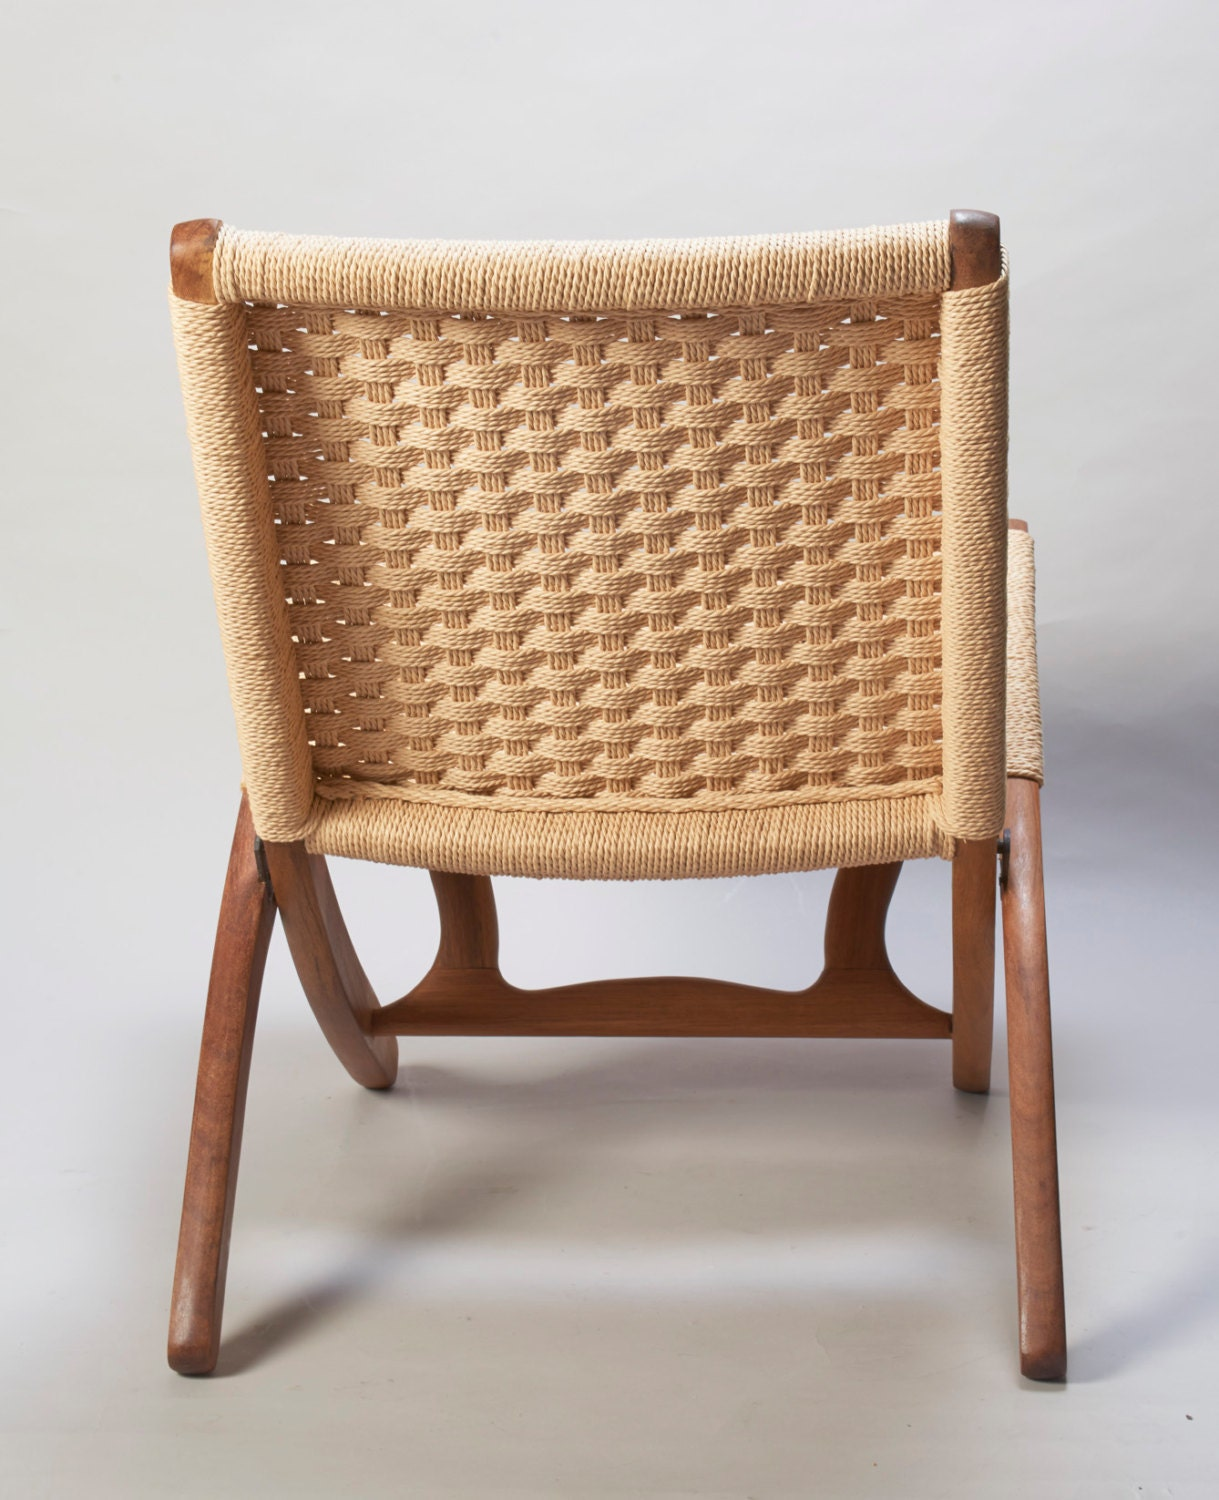 Danish Teak Dining Chairs furthermore Id F 2117573 also Mid Century Server Tea Cart in addition Id F 928876 also Mid Century Hans Wegner Style Woven Rope. on danish hans wegner style rope folding